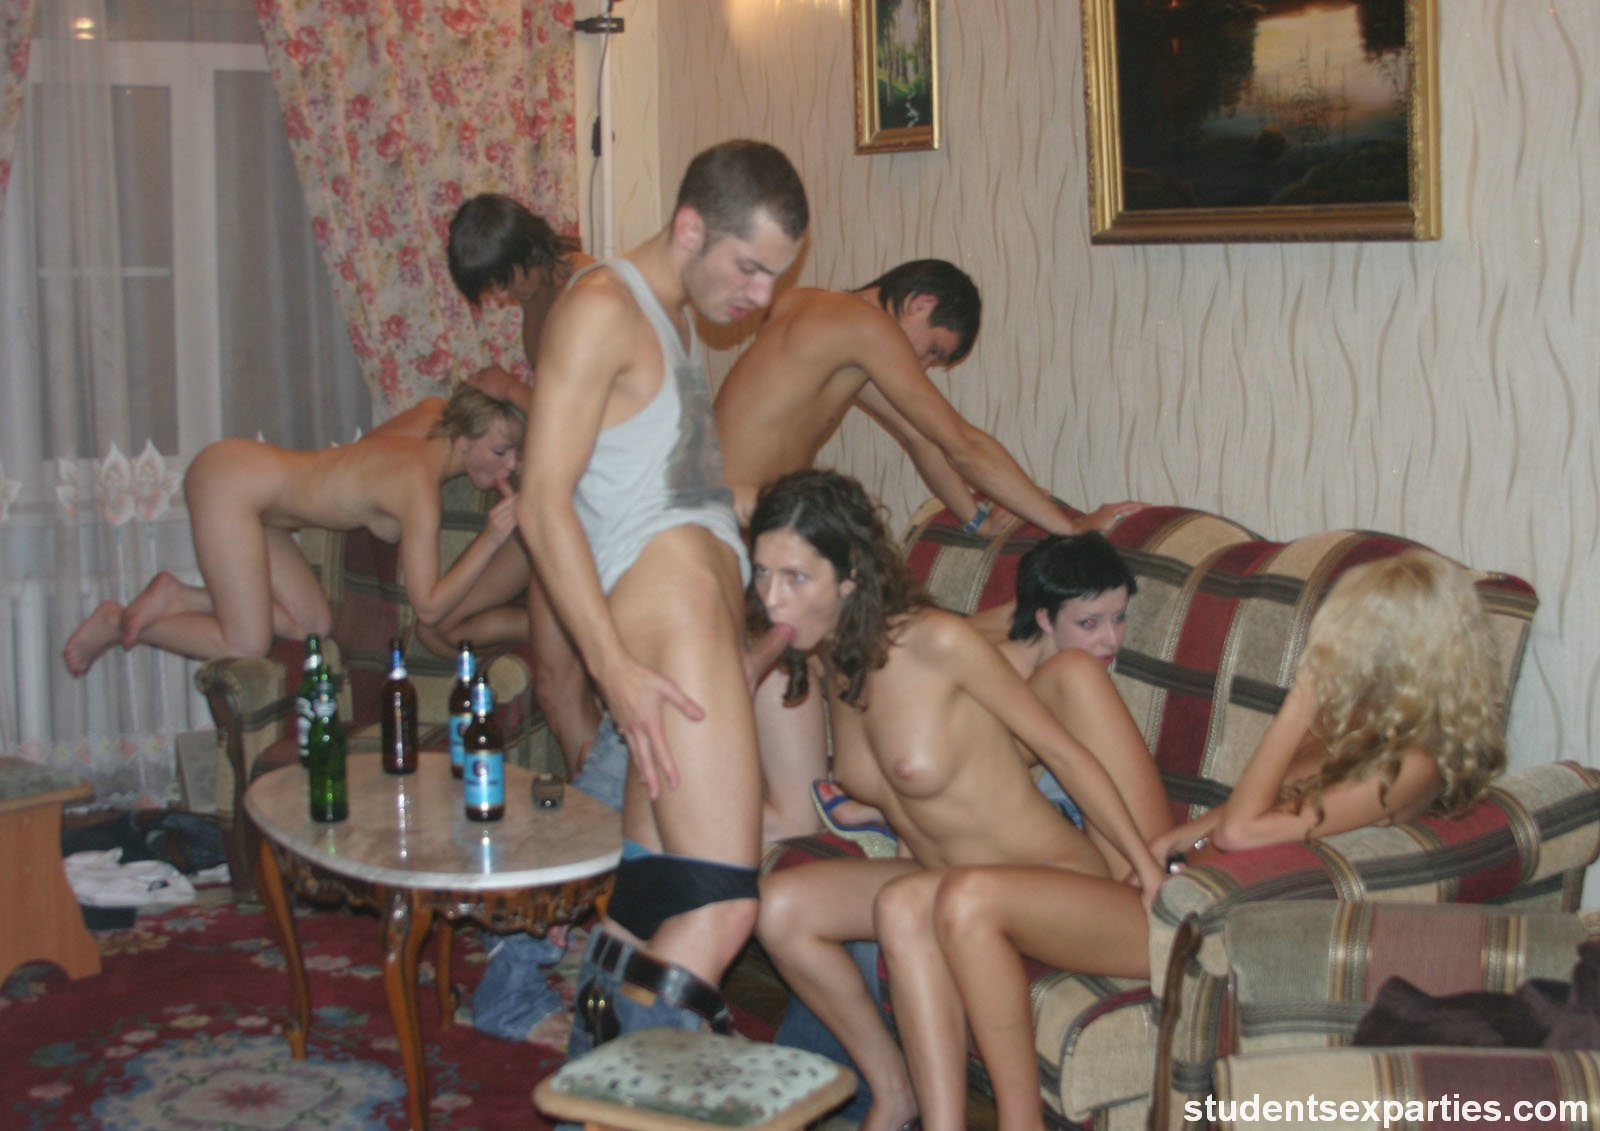 Nude coed sex party apologise, but